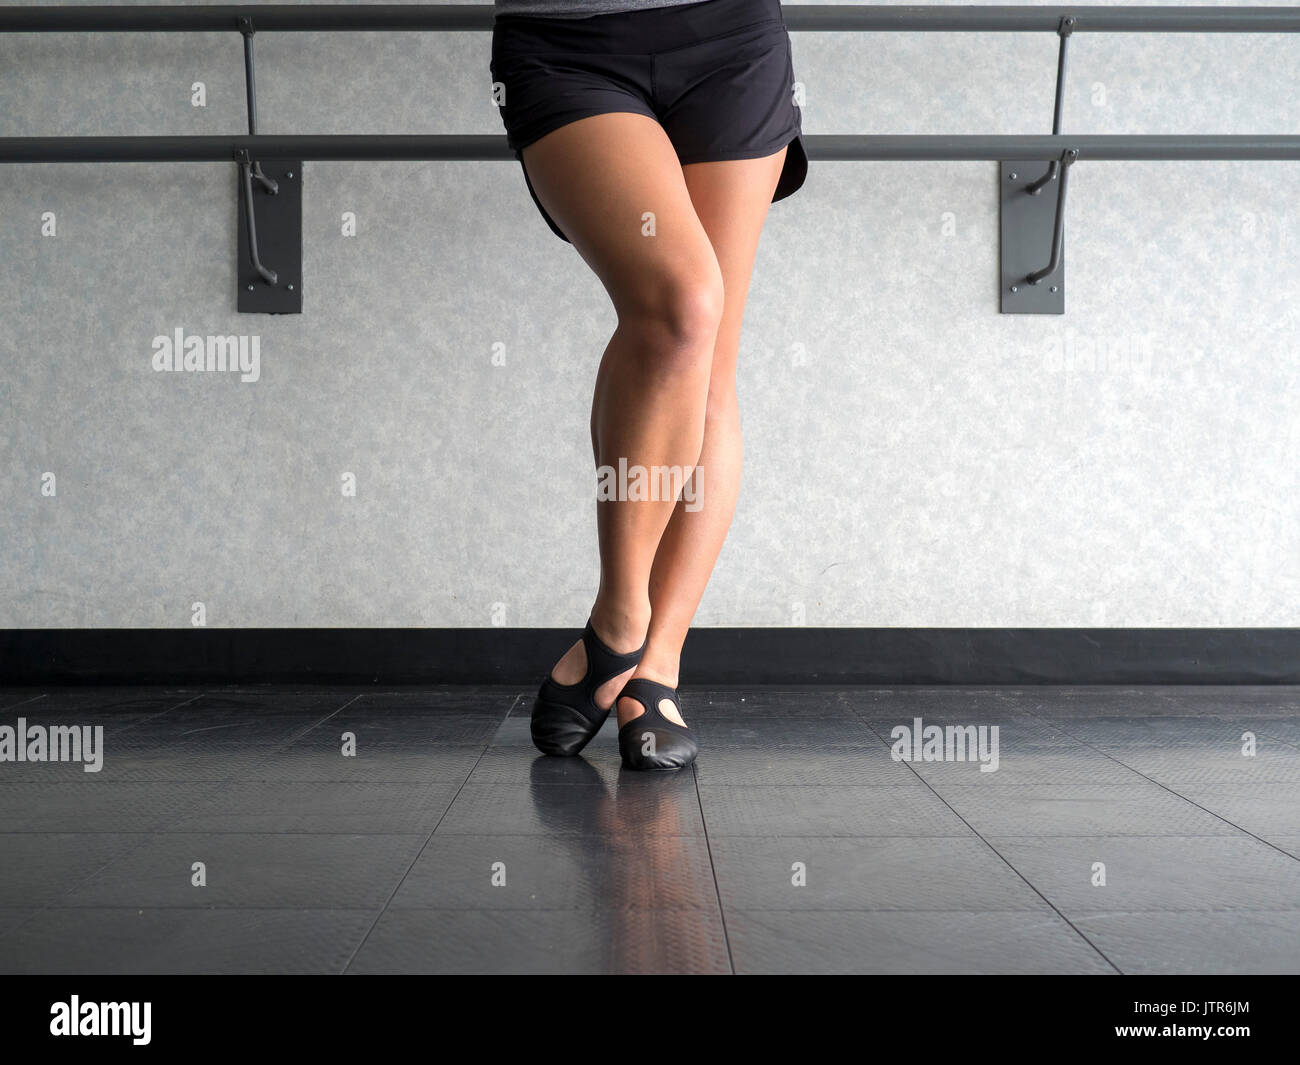 Dancer with Bevelled foot in Jazz dig position - Stock Image